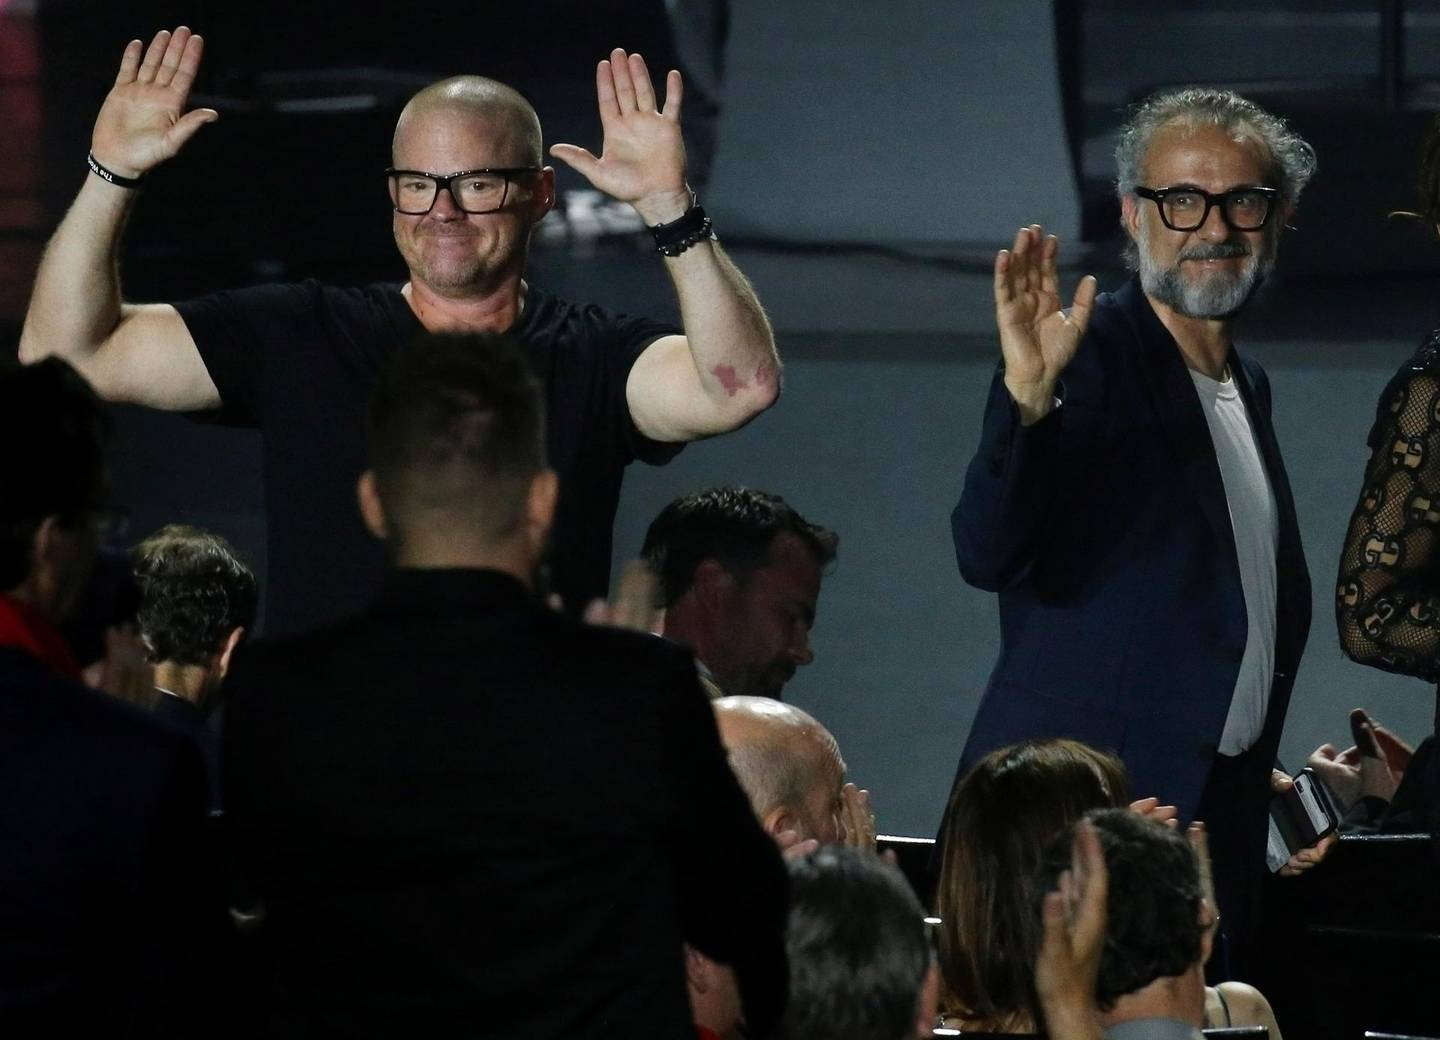 Chefs Heston Blumenthal and Massimo Bottura react during the World's 50 Best Restaurants Awards at the Marina Bay Sands in Singapore, June 25, 2019. REUTERS/Feline Lim